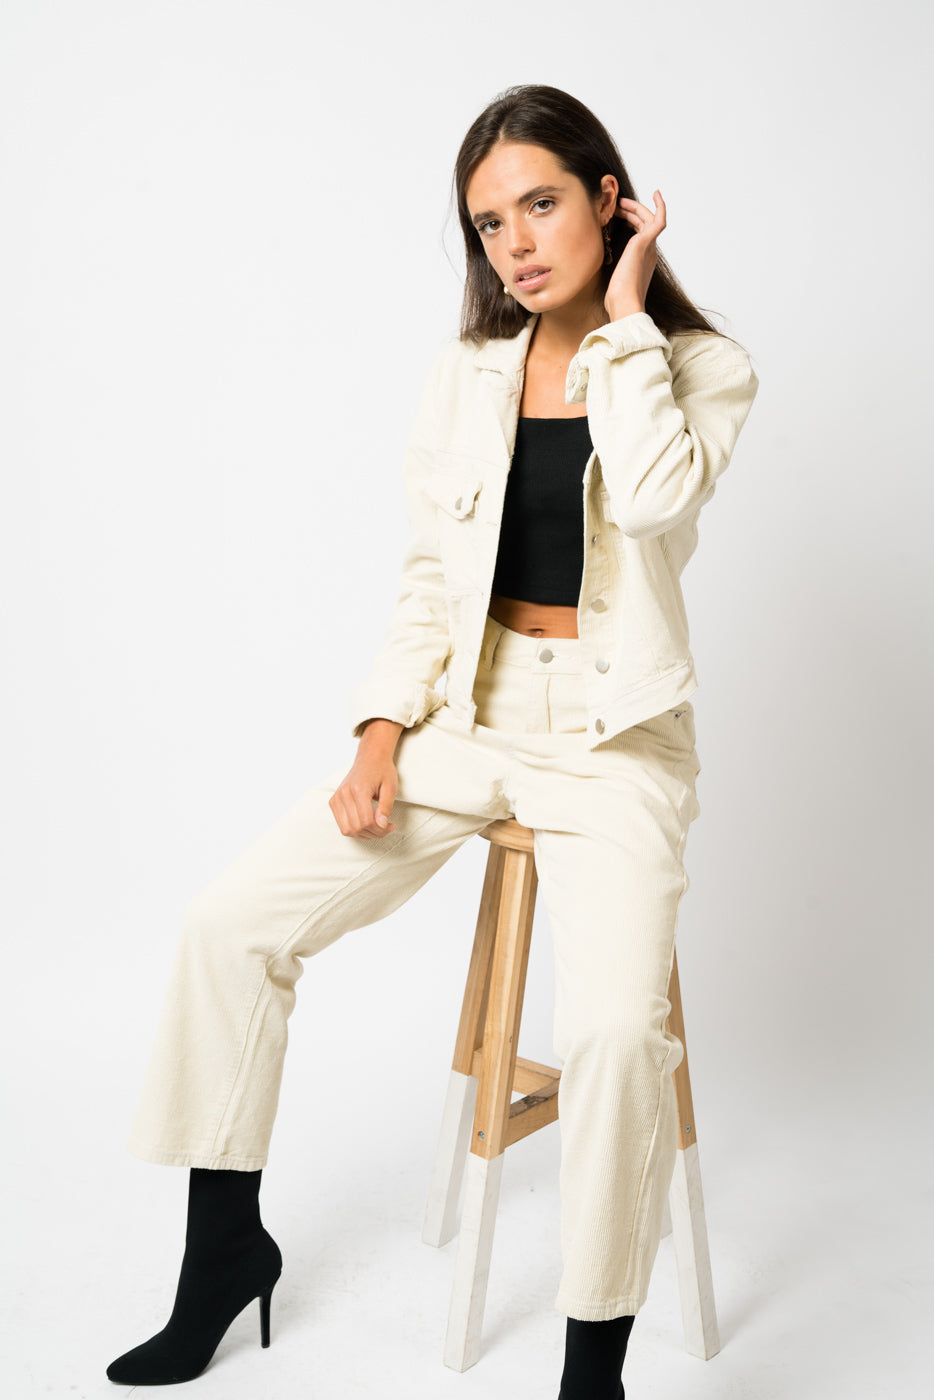 FAE LONDON - CHELSEA CROPPED JACKET IN BEIGE CORDUROY